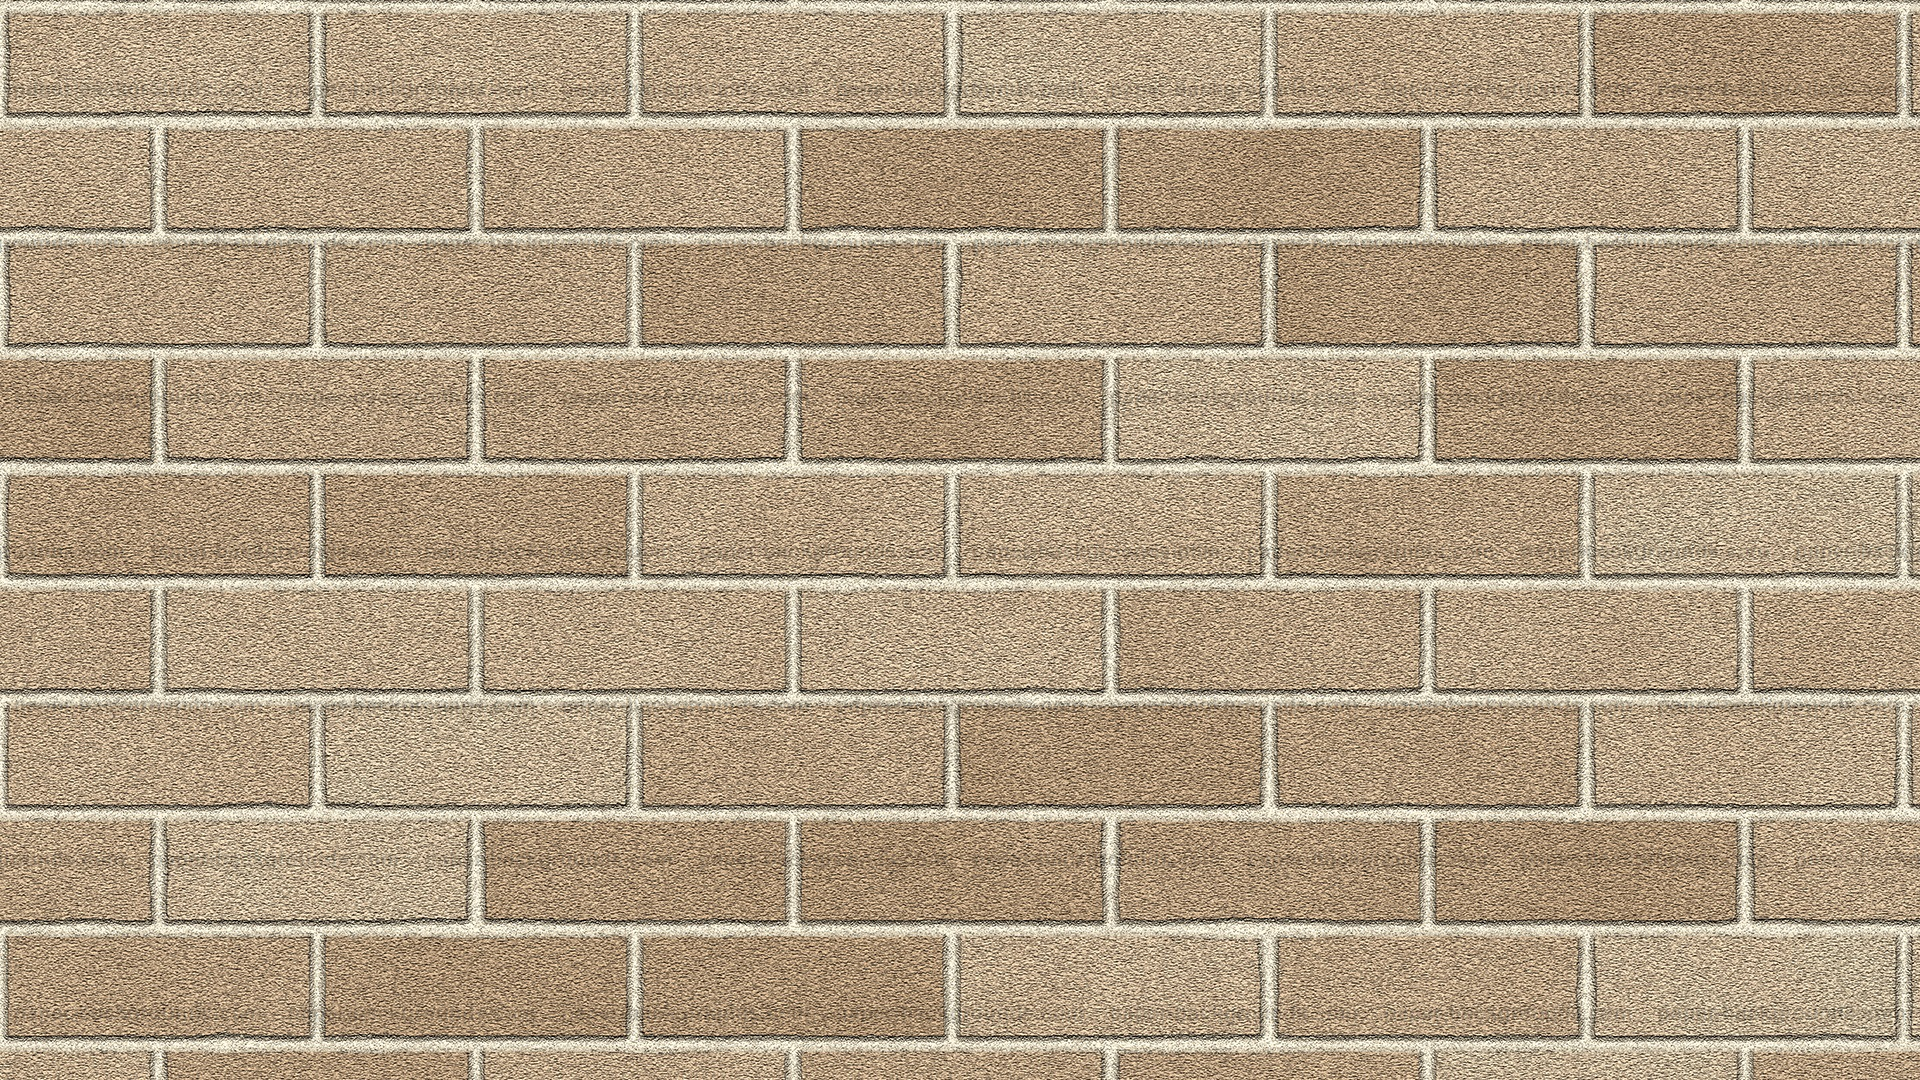 Yellow Brown Calais Brick Wall Texture HD